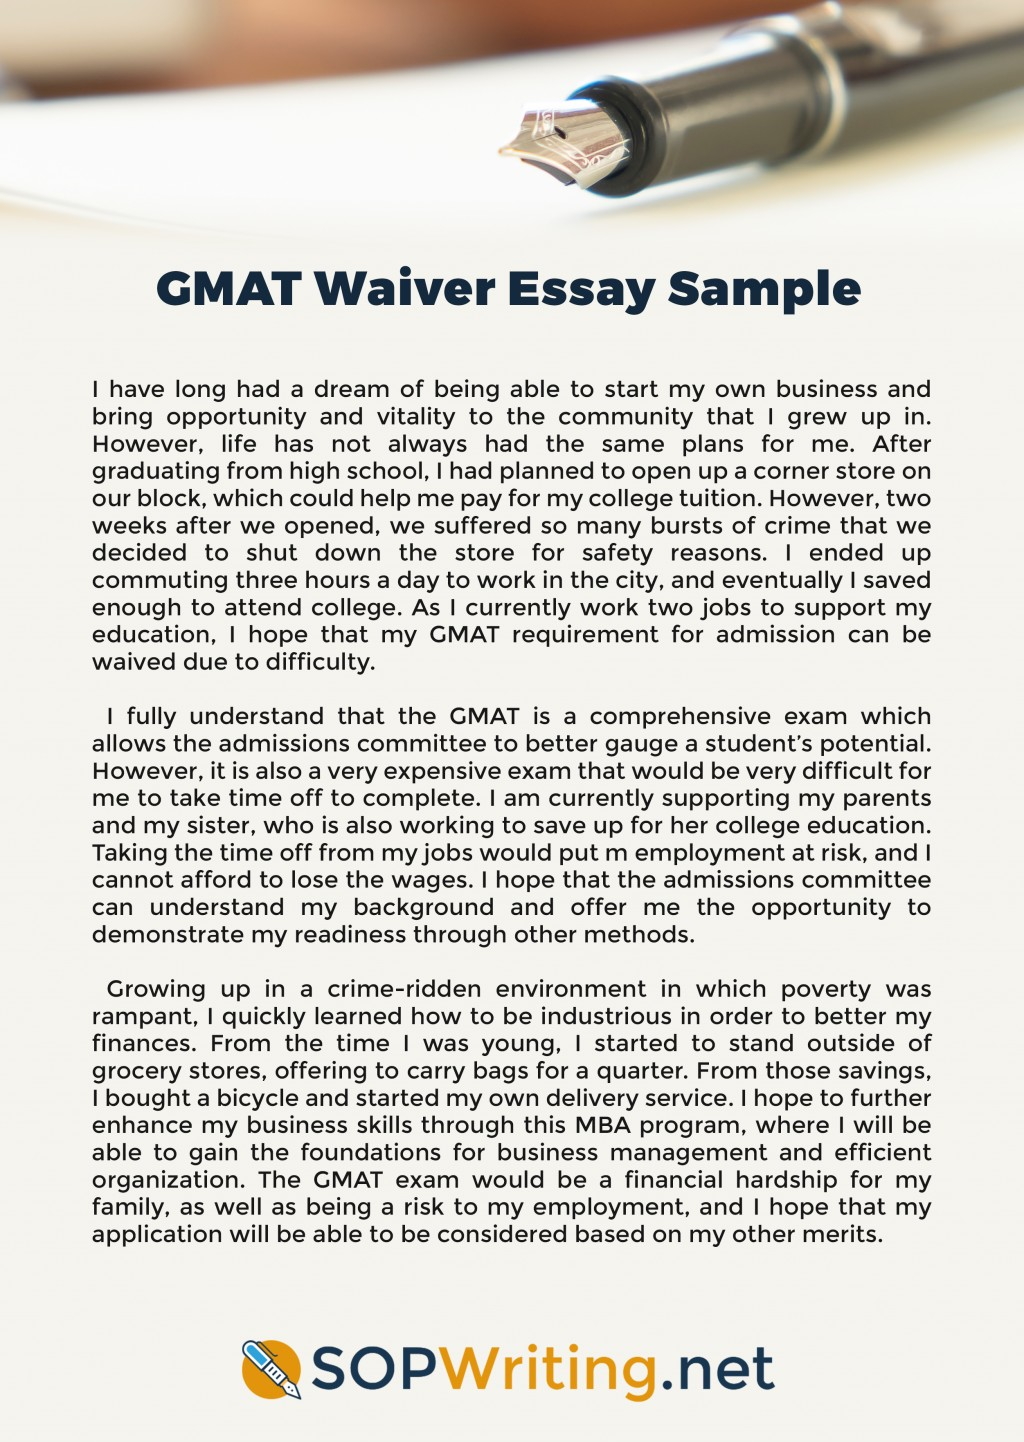 019 Essay Example Gmat Writing Dispatcher Resume Examples Best Format Waiver S Awa Samples Pdf Sample Topics Issue Analysis Of An Questions Application Argument Astounding Practice Prompts Large